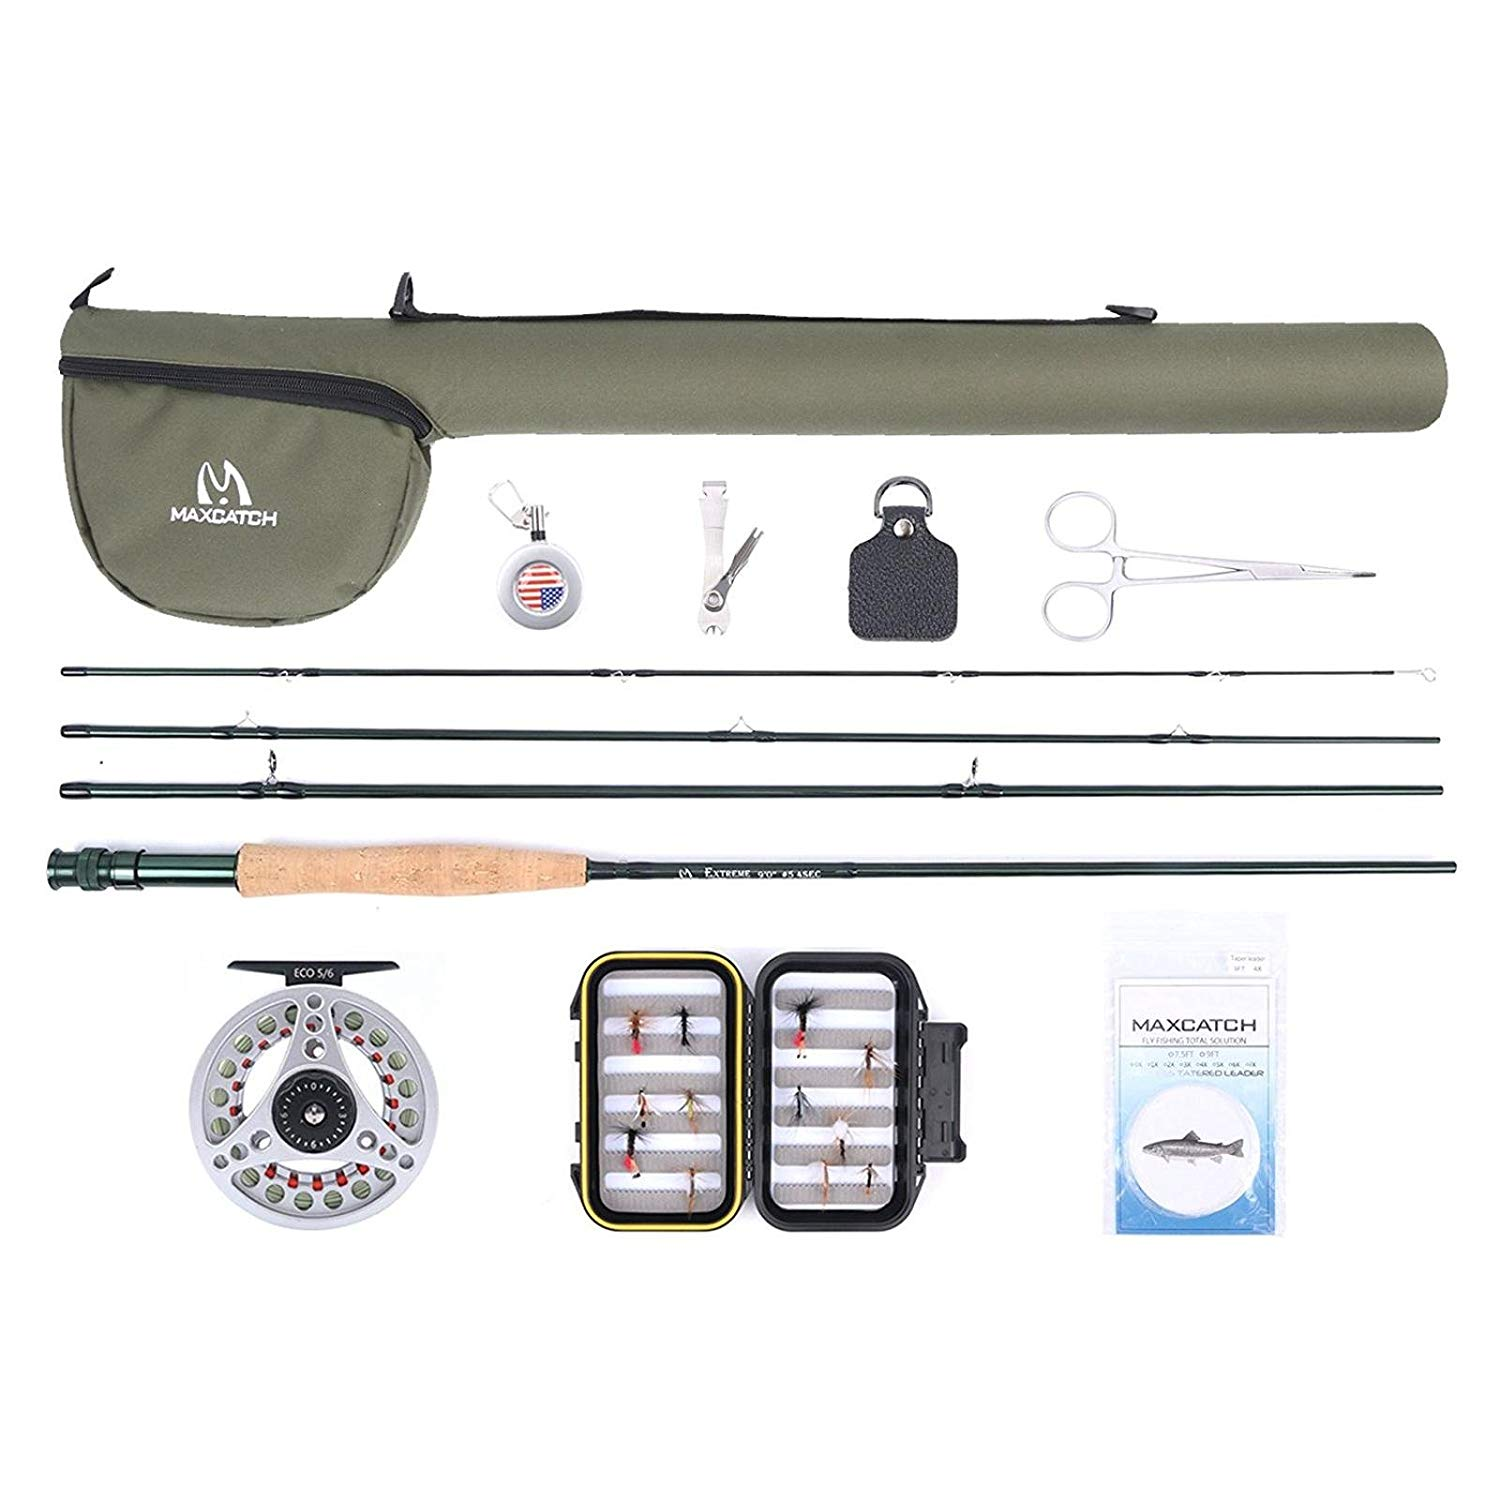 Maxcatch fly fishing beginner kit.